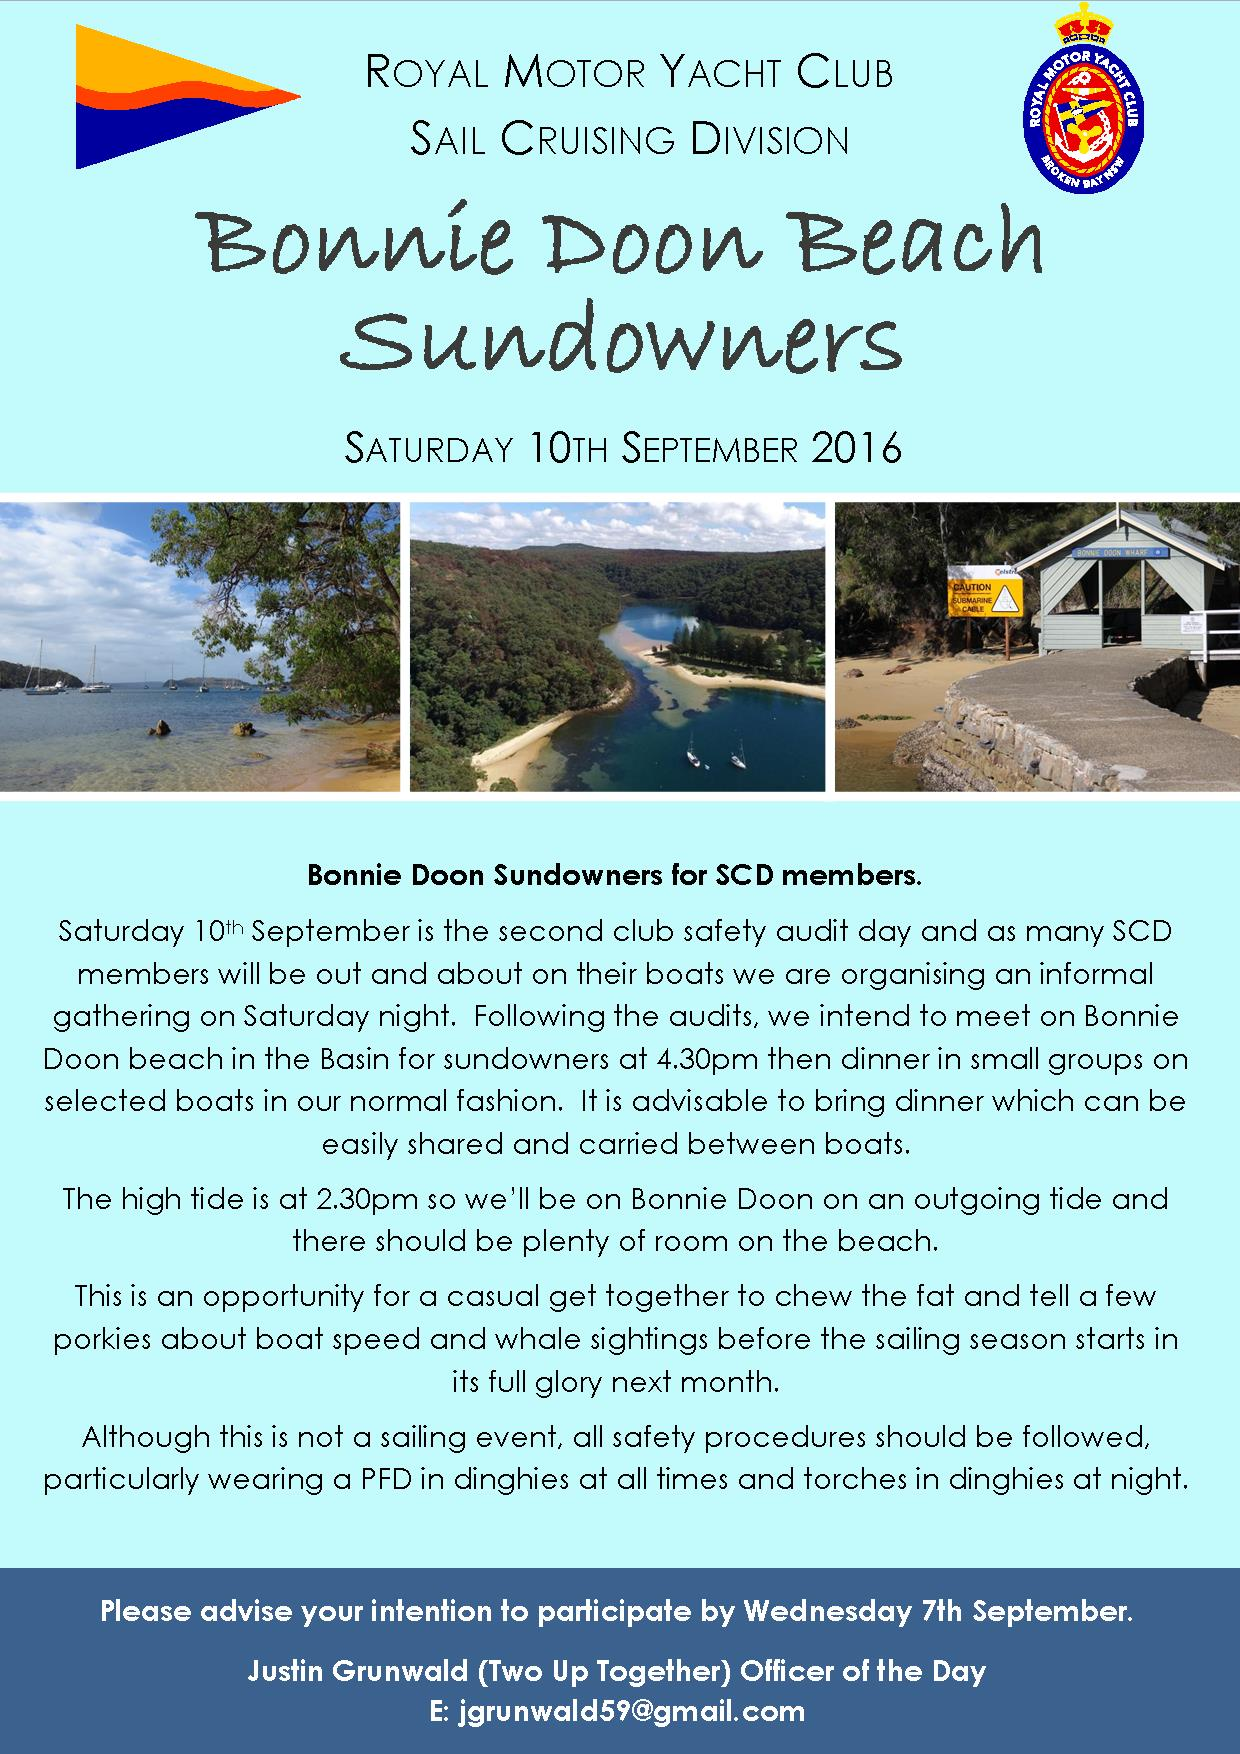 Safety audits Bonnie Doon Beach Sundowners 10th September 2016